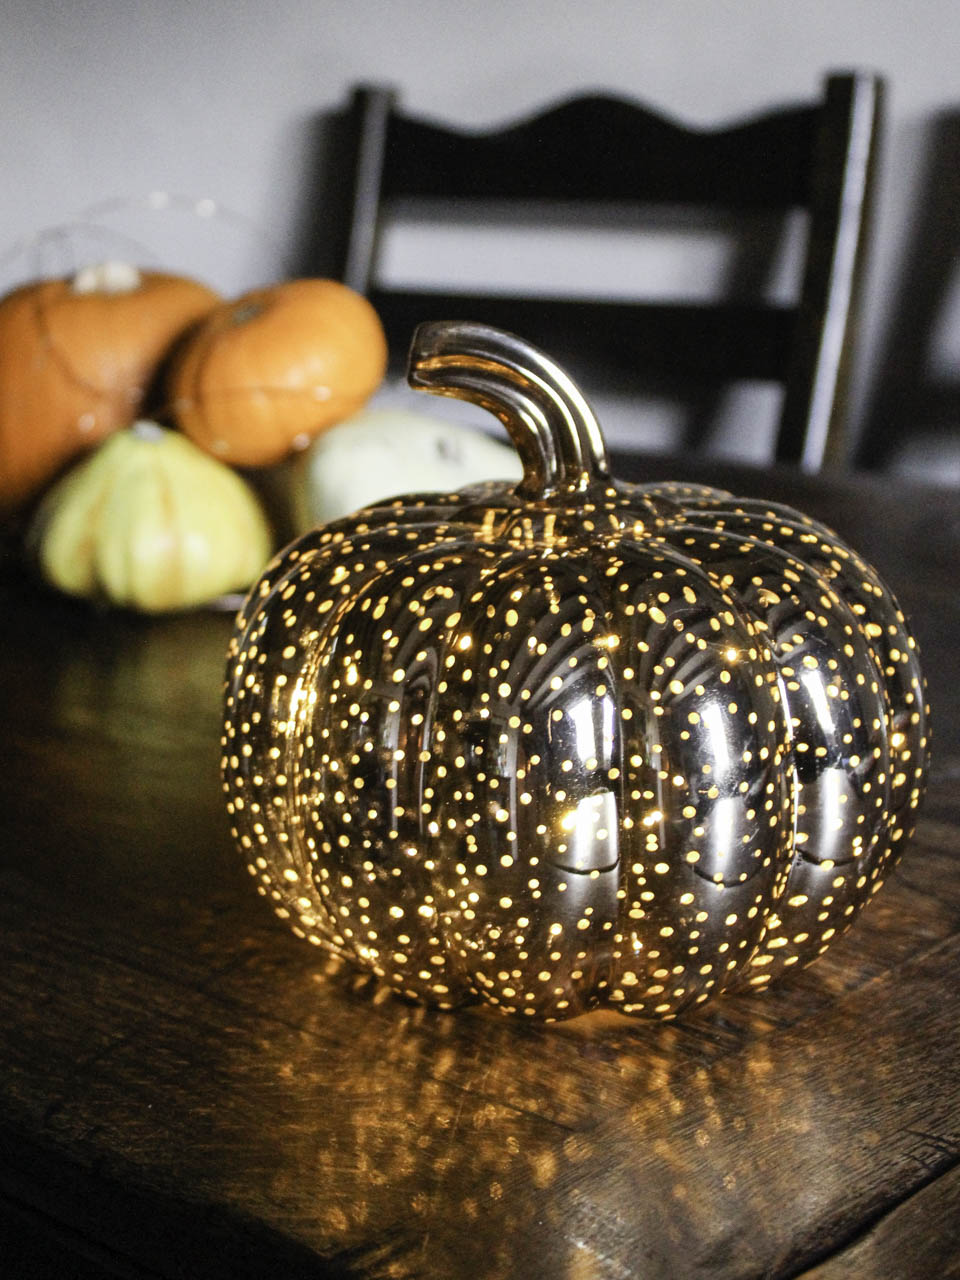 Glass Pumpkin from Lights4fun